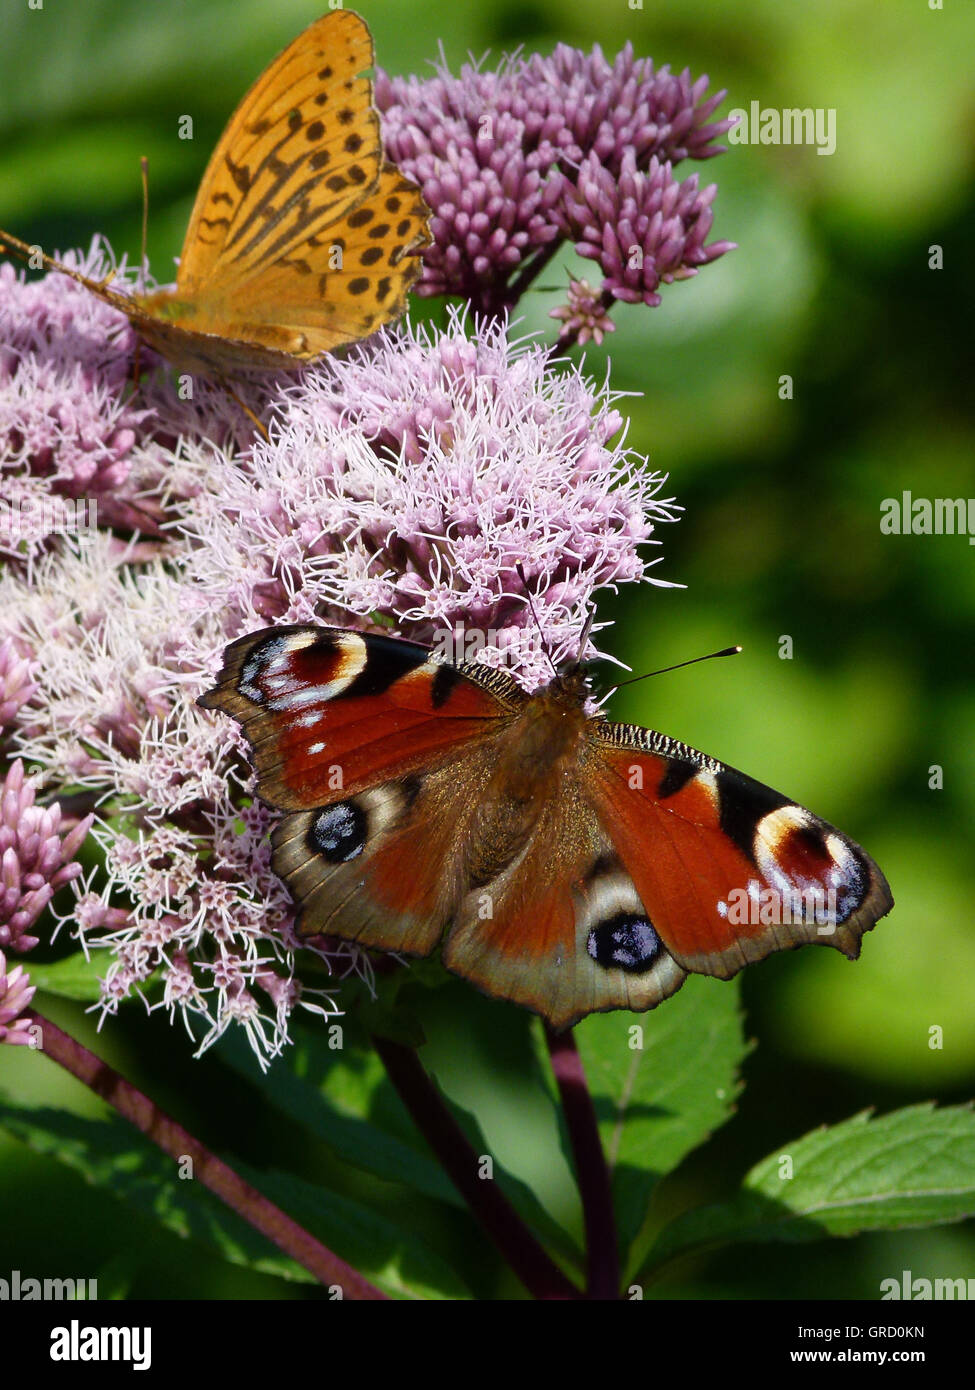 Peacock Butterfly And Butterfly Argynnis Paphia On Hemp Agrimony - Stock Image